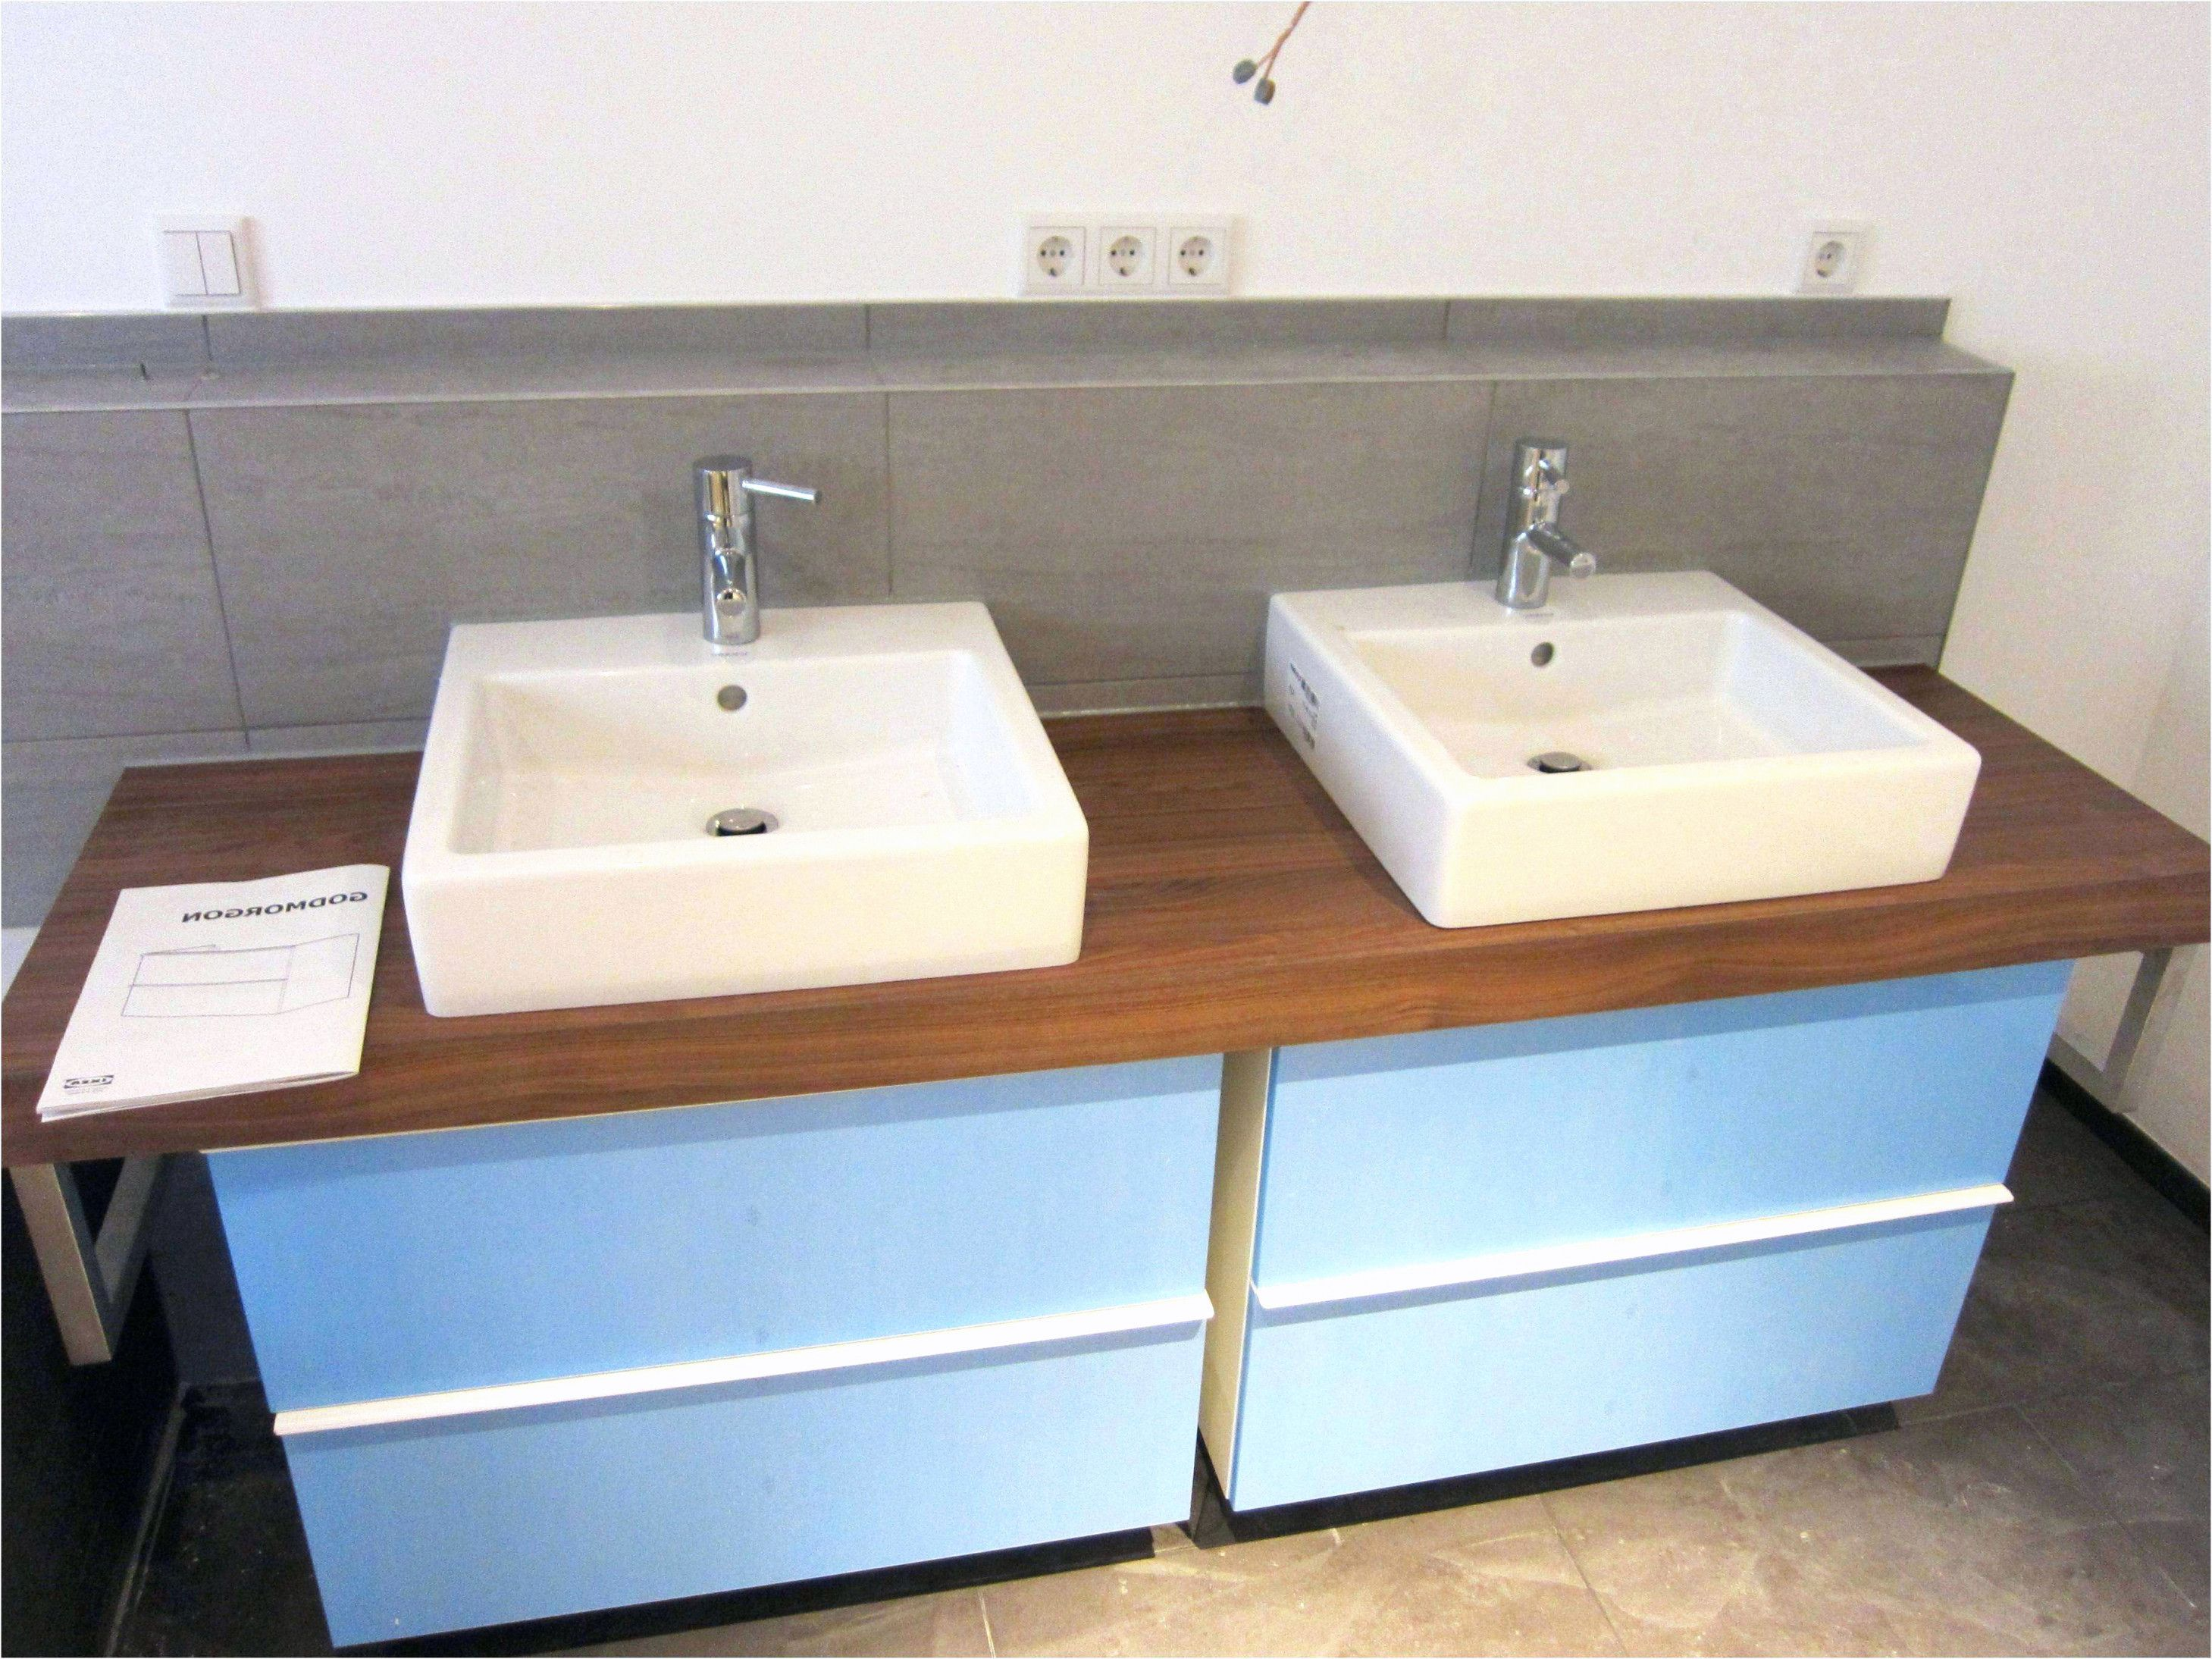 Waschbecken Mit Unterschrank Ikea Bathroom Furniture Vanity Ikea Godmorgon Bathroom Vanity Cabinets